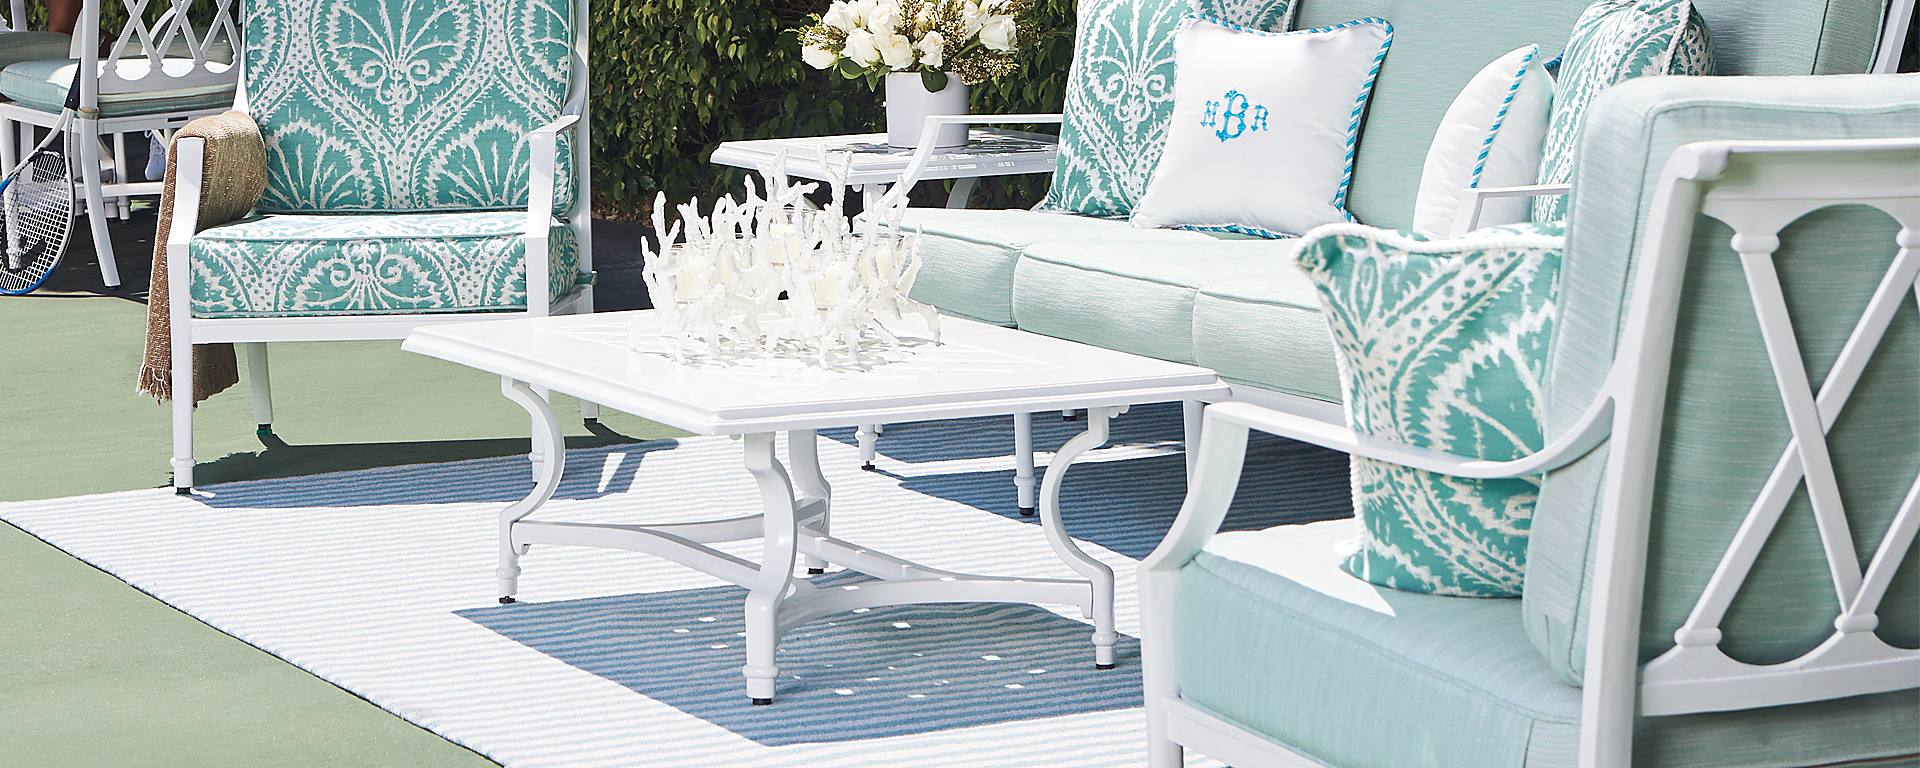 Outdoor Decor Tips - Home + Style